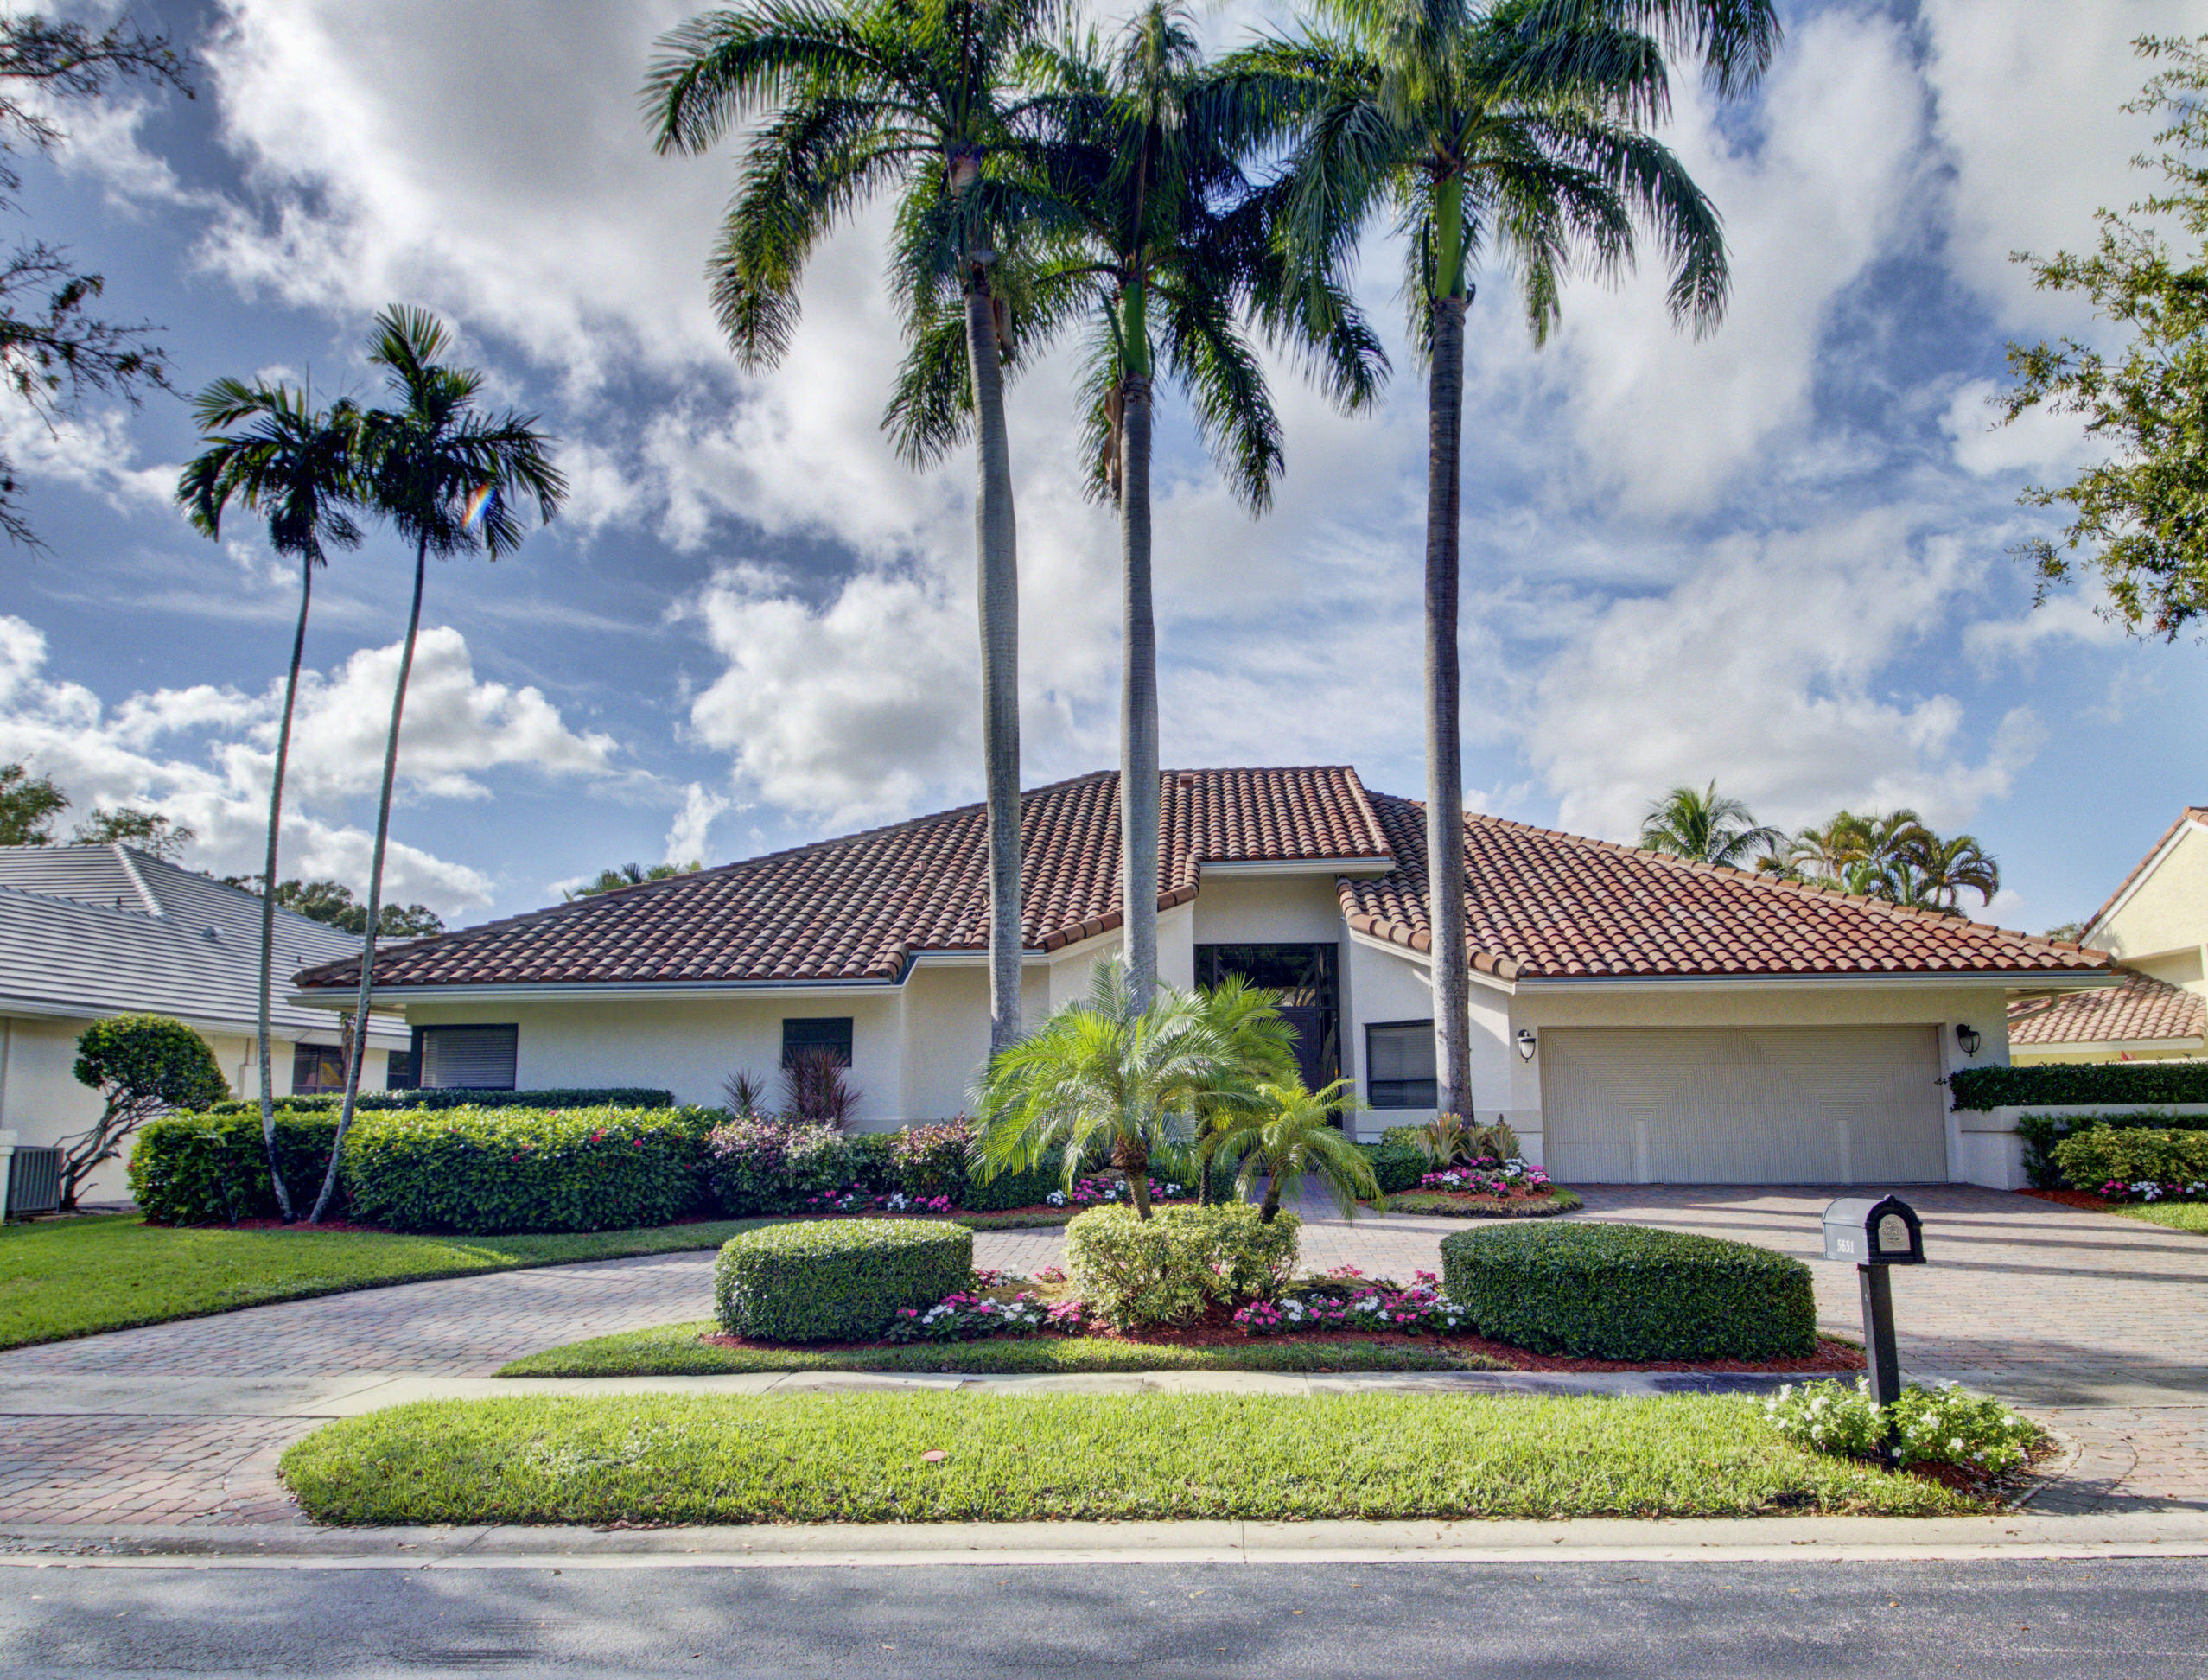 Details for 5651 23rd Avenue Nw, Boca Raton, FL 33496